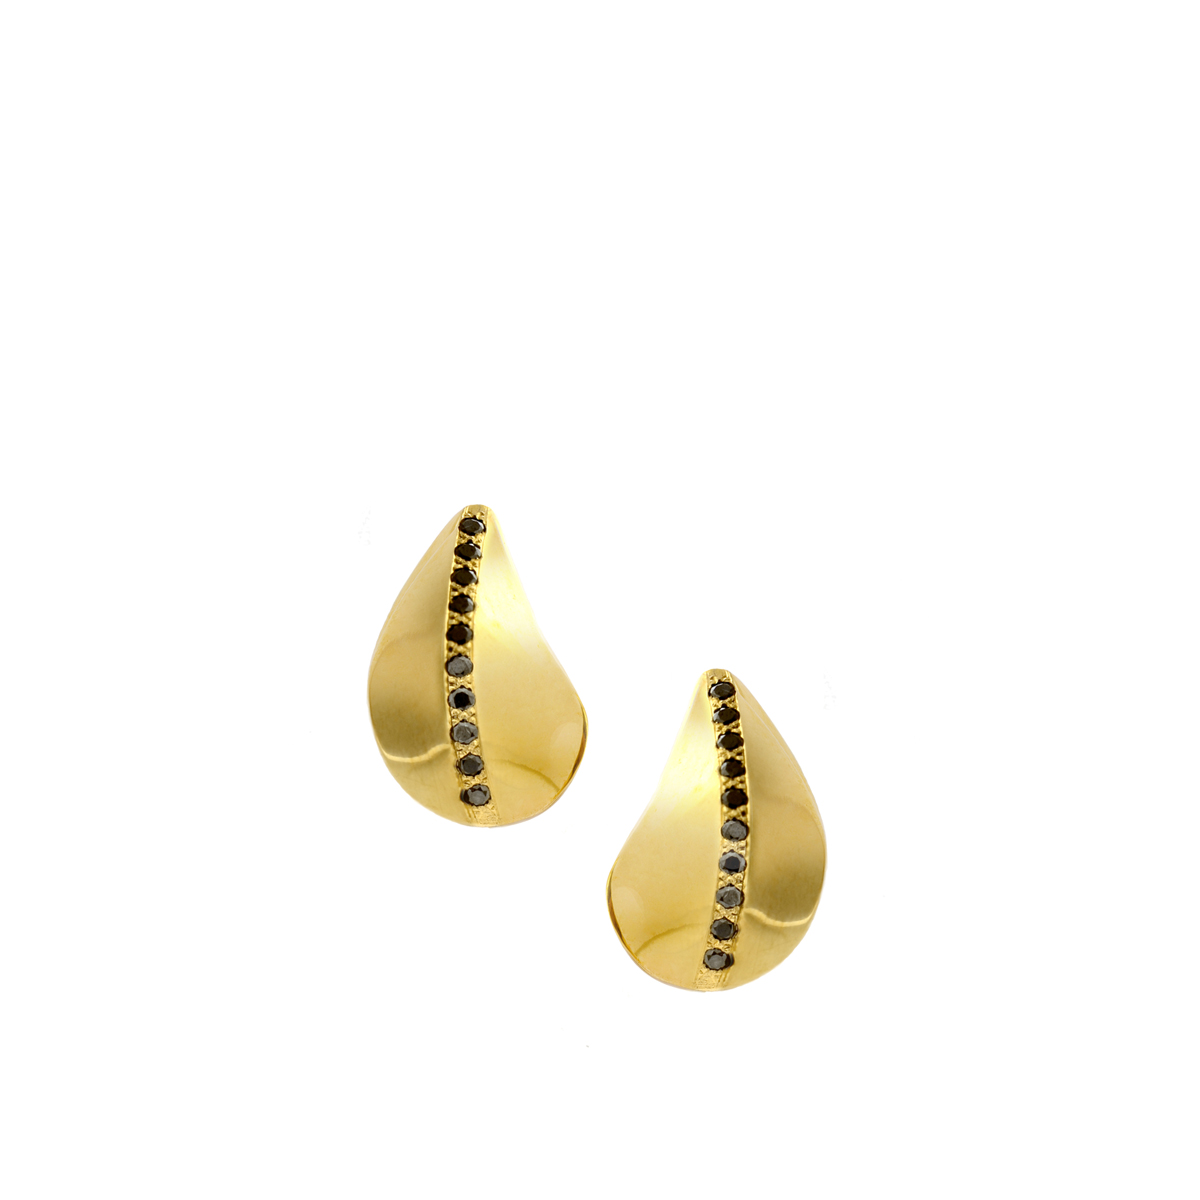 Leaves stud gold and black Daimonds earrings